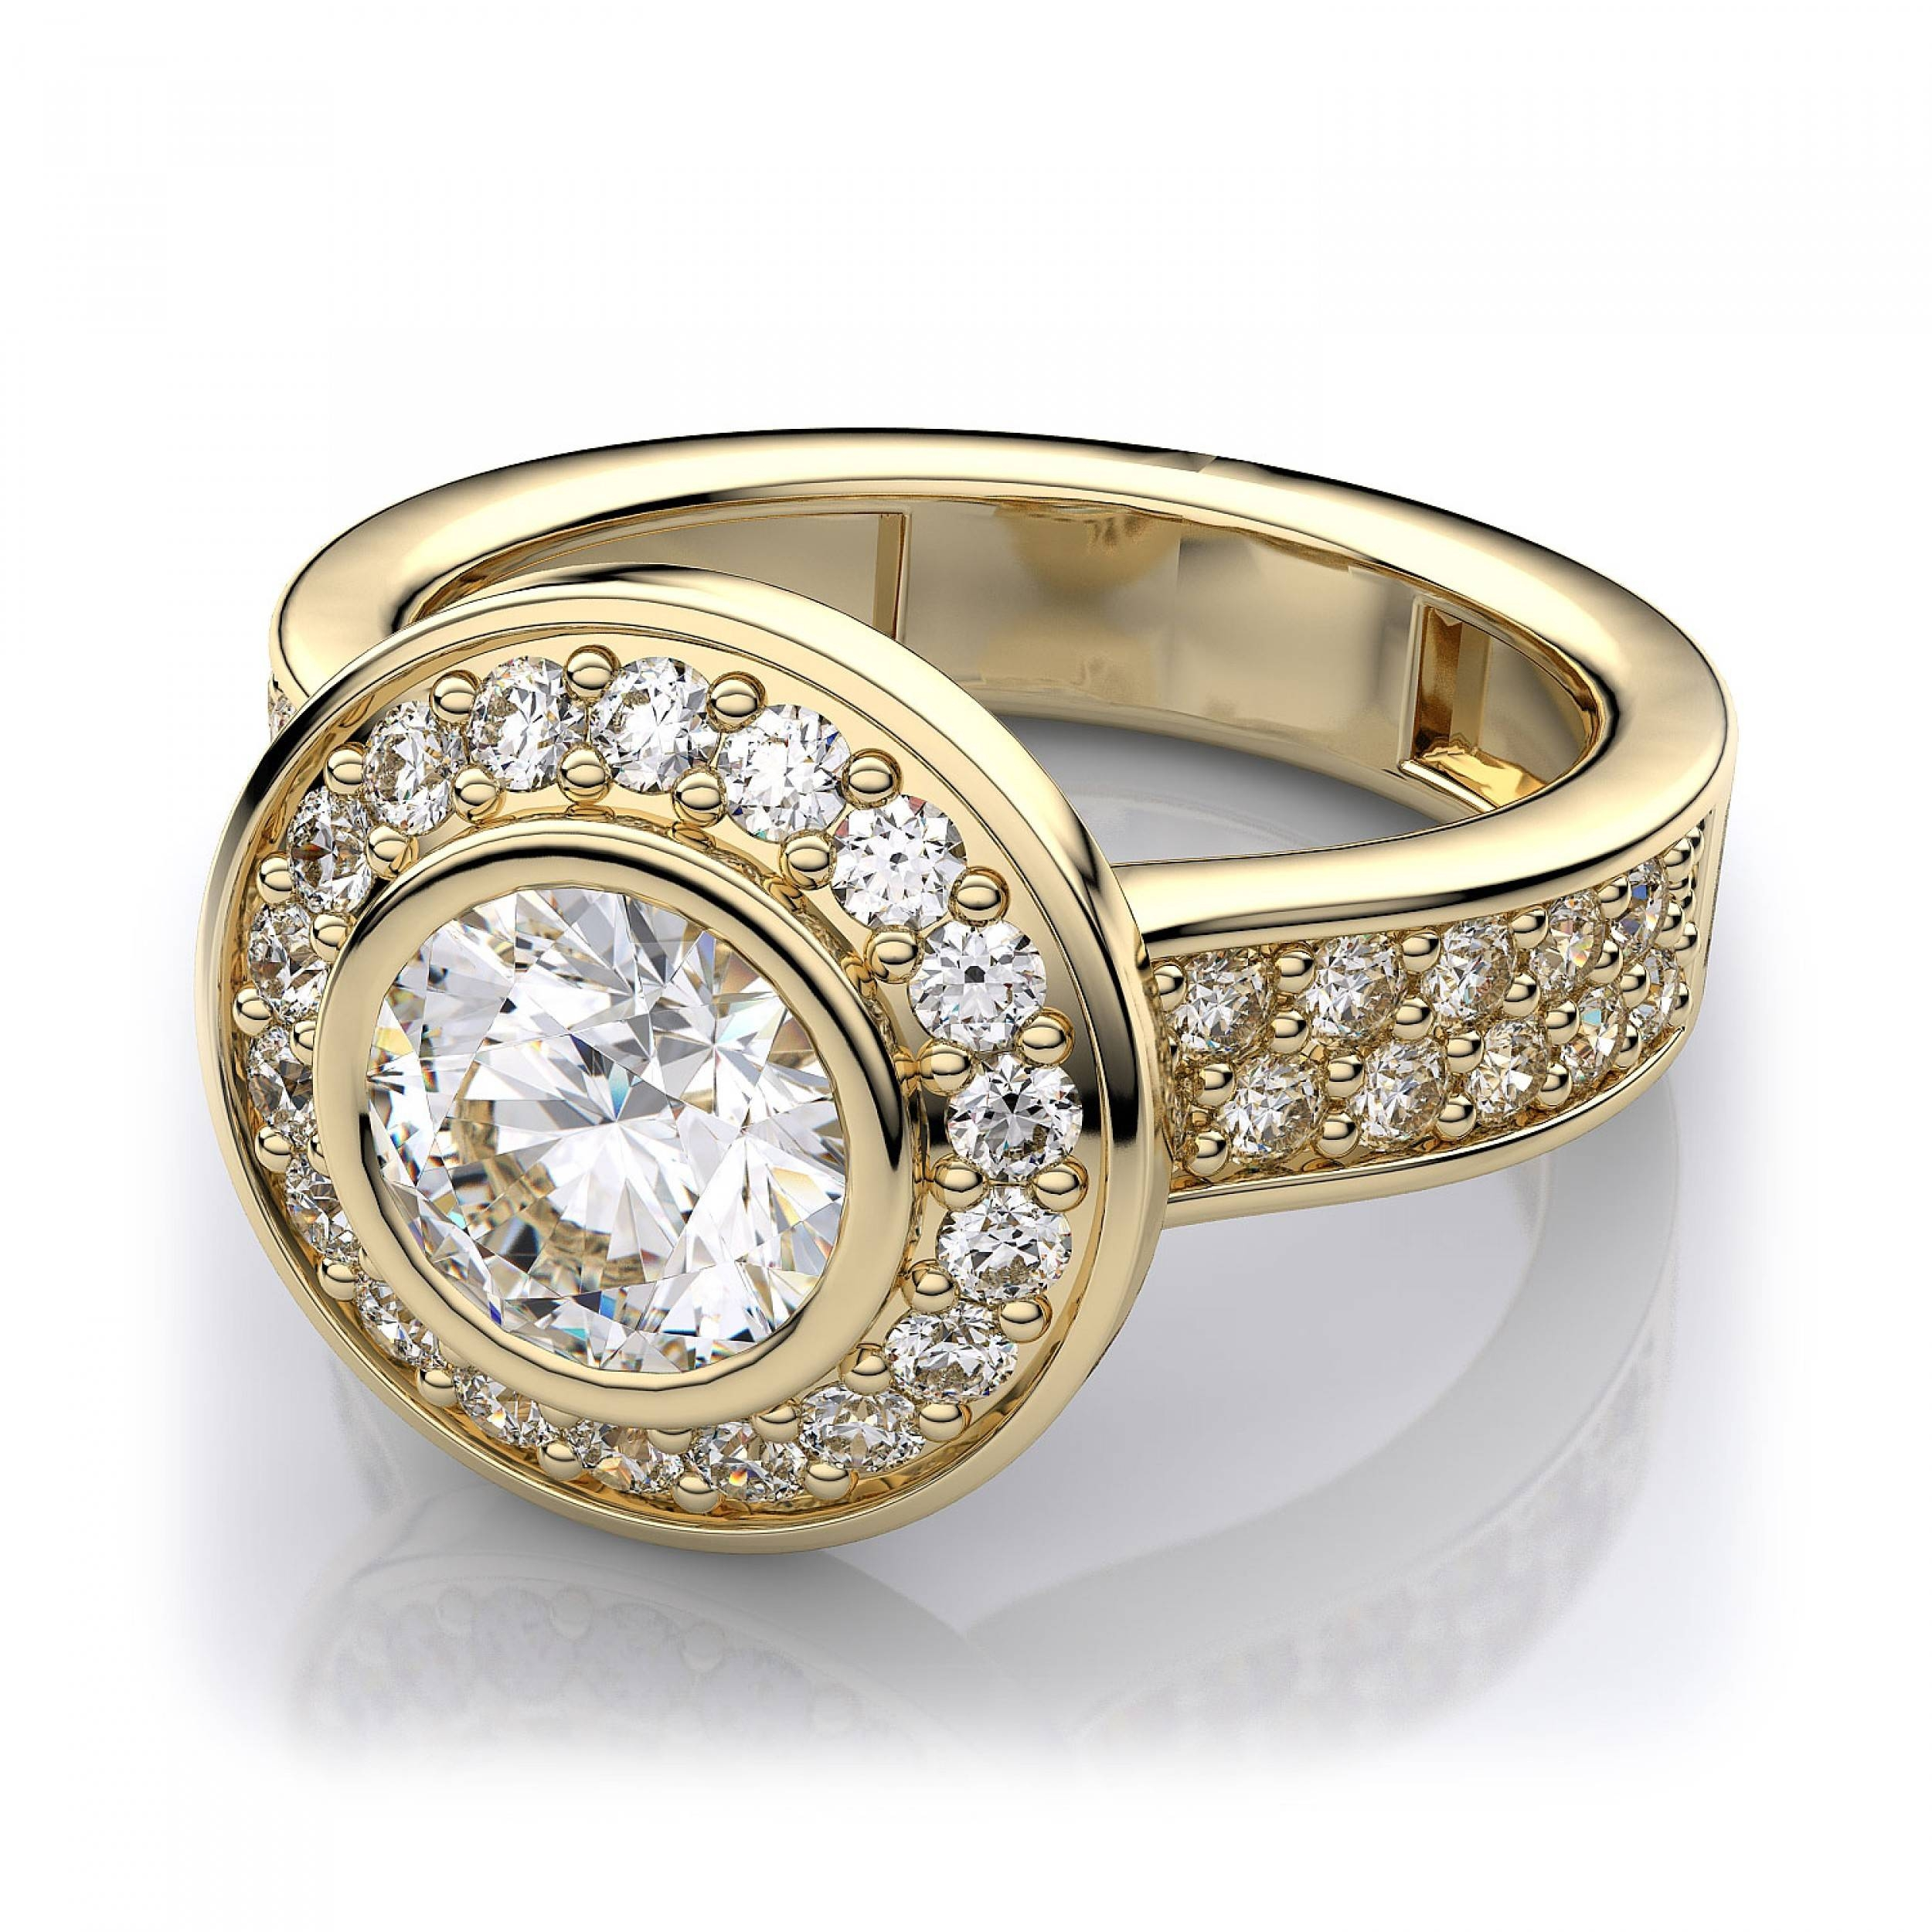 84Ctw Modern Round Halo Bezel Engagement Ring In 18K Yellow Gold Intended For Engagement Rings 18K Yellow Gold (View 3 of 15)